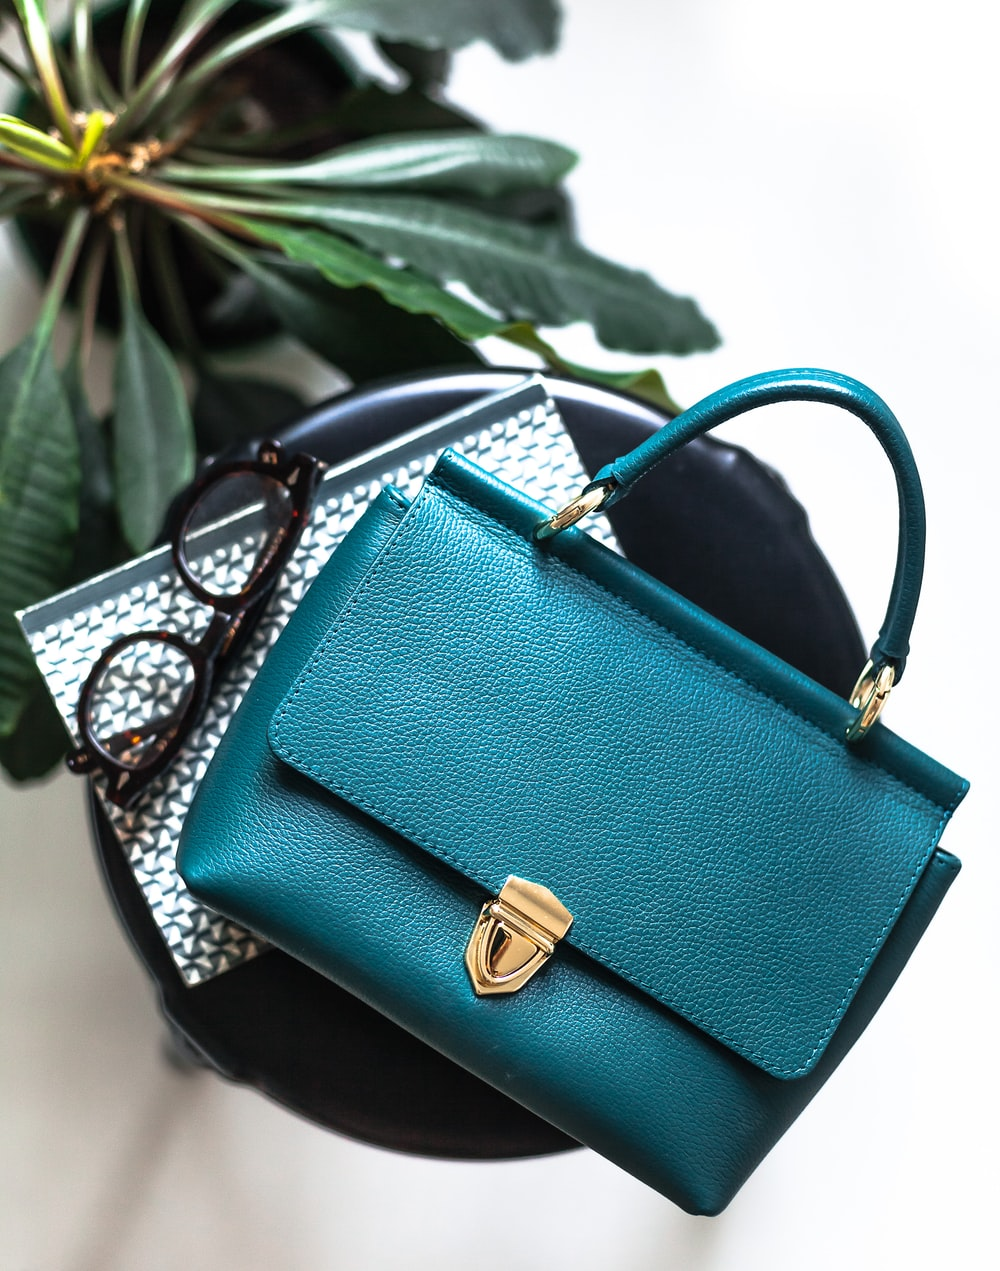 blue leather handbag on black leather bag